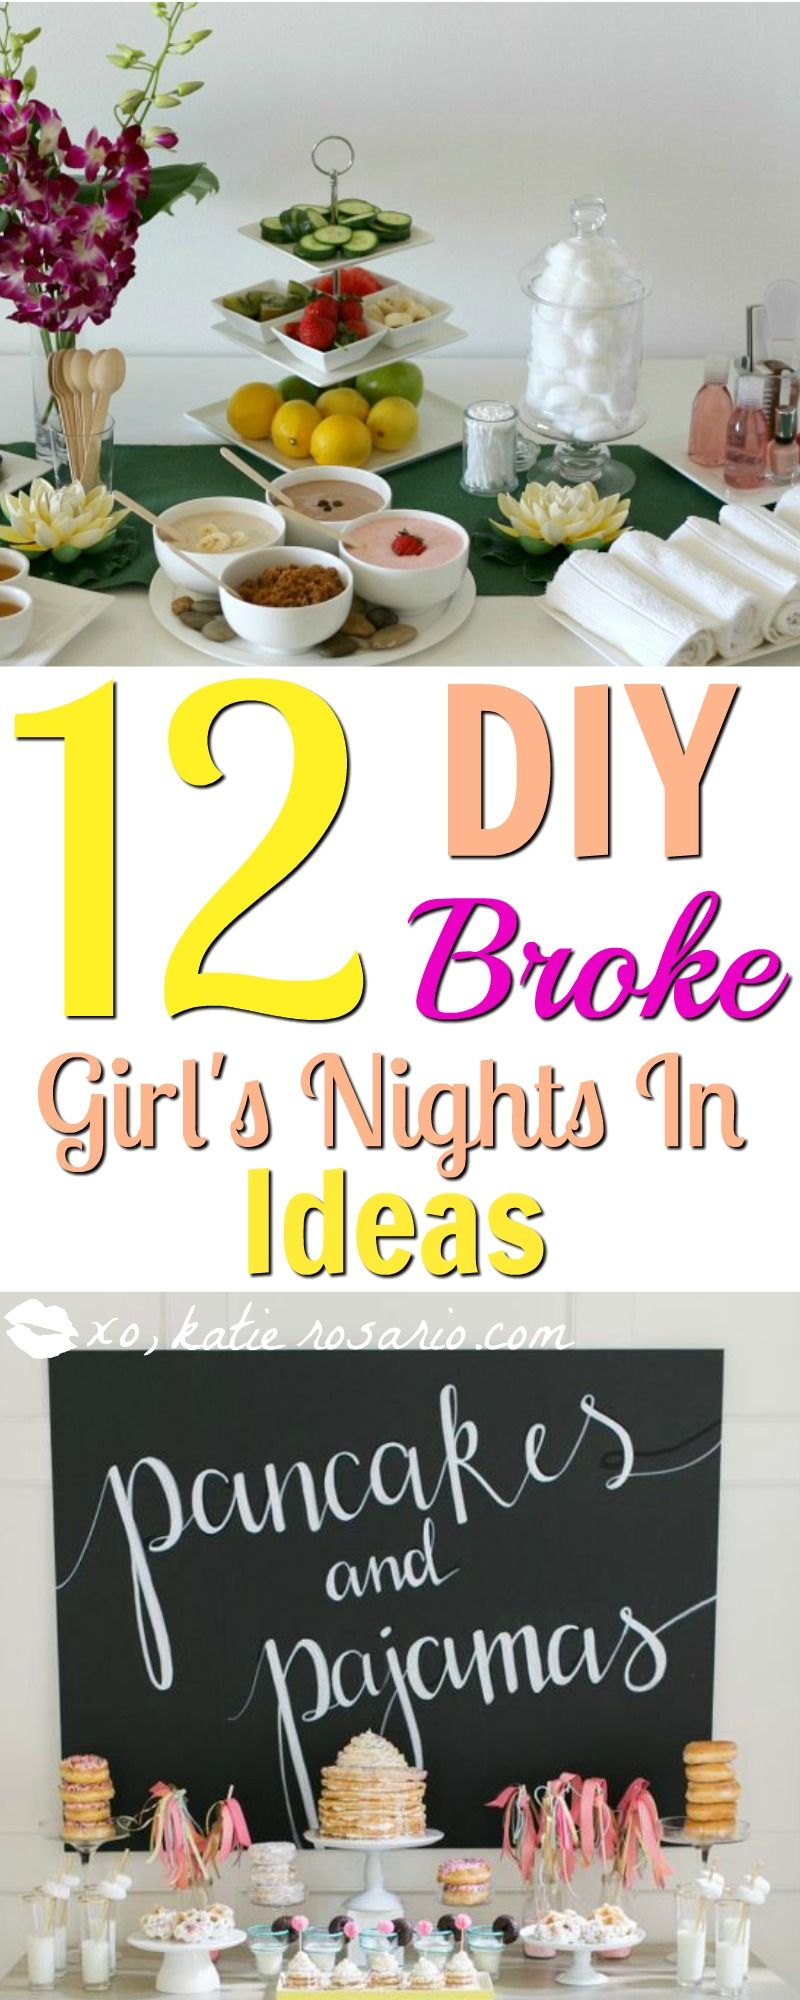 12 diy broke girls night in ideas | best of xo, katie rosario